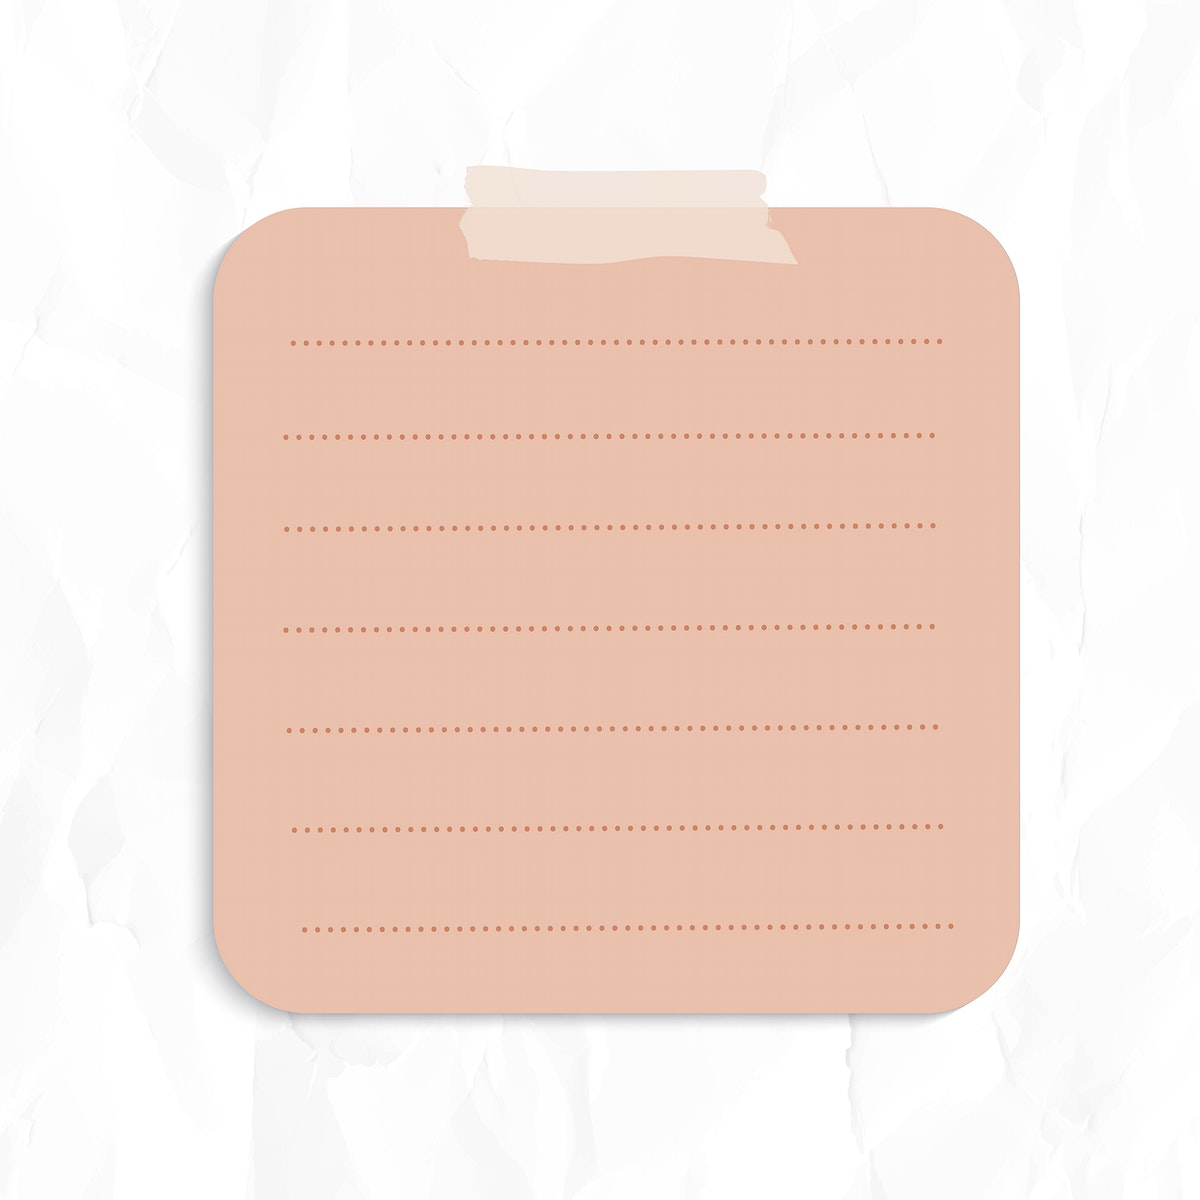 Blank lined paper set with sticky tape on wrinkled paper background vector